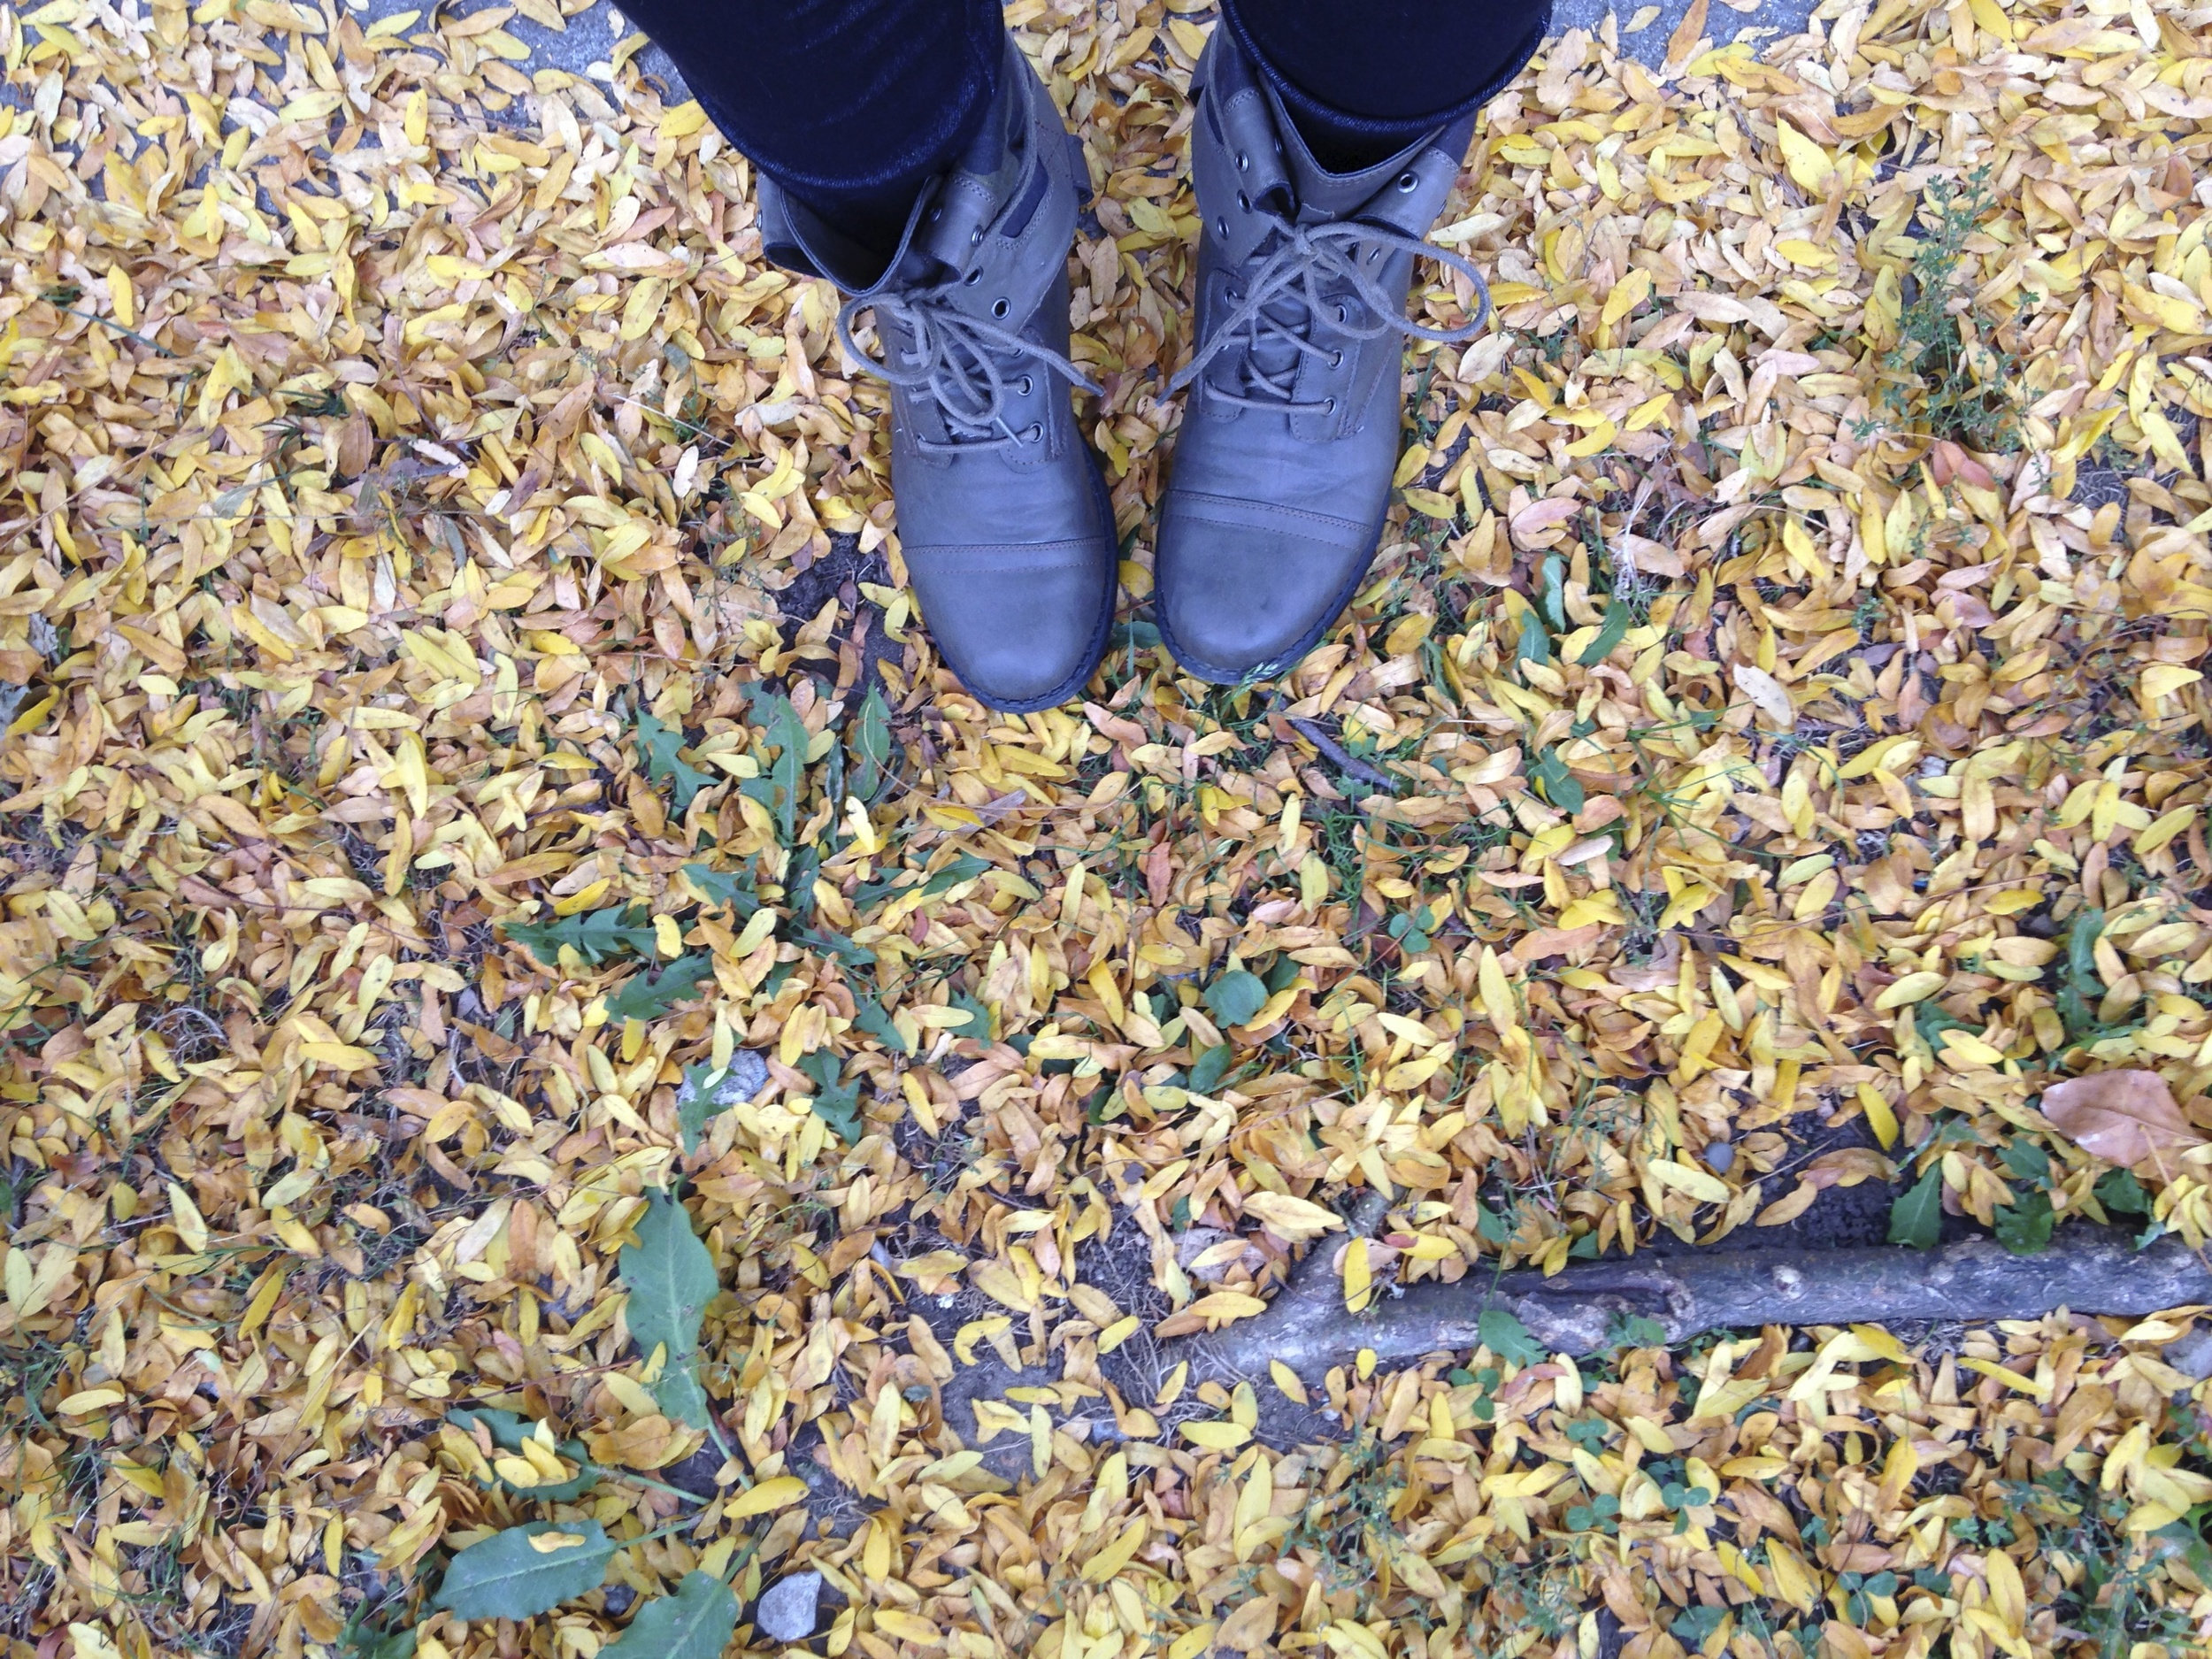 I have at least 10 photos of my shoes and leaves on my phone. Future coffee table book.